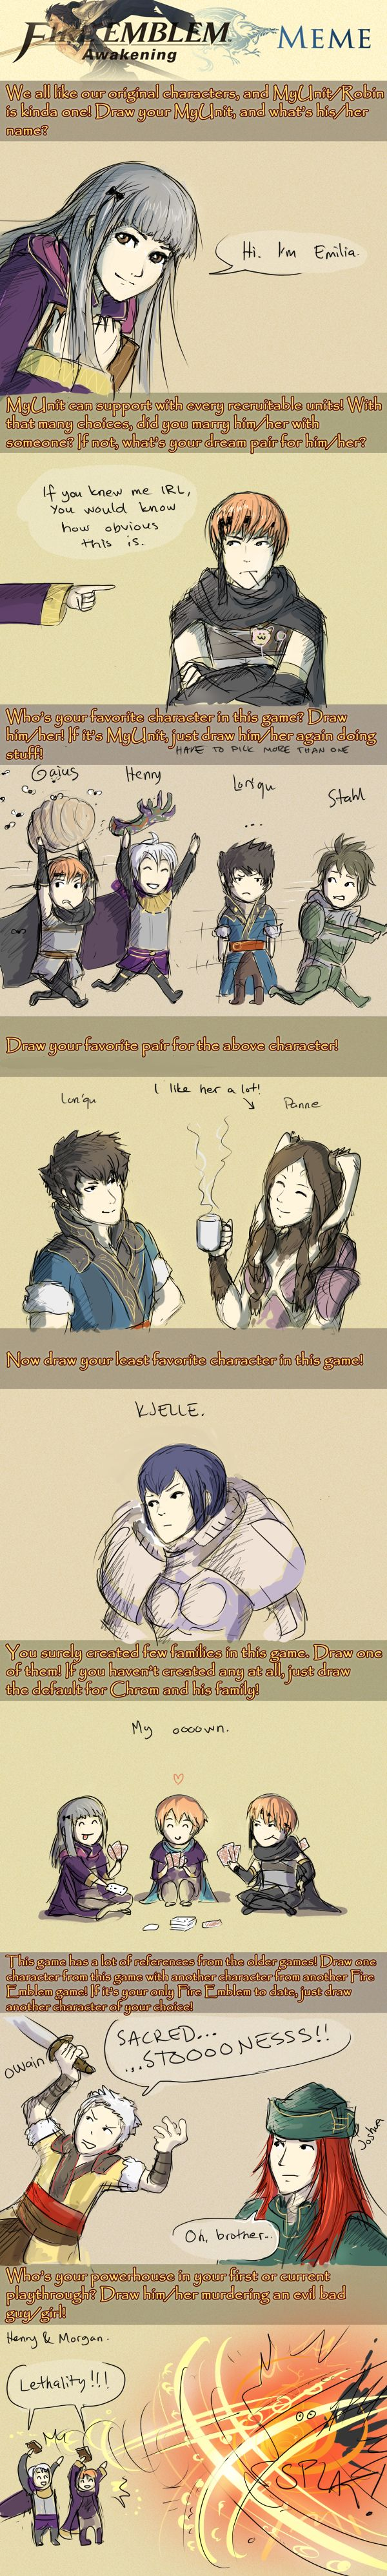 Fire Emblem Awakening Meme (Emilia's version) by Oviot.deviantart.com on @DeviantArt I love Emilia's scrbbles they are just too great... (Plus we both married Gaius....)